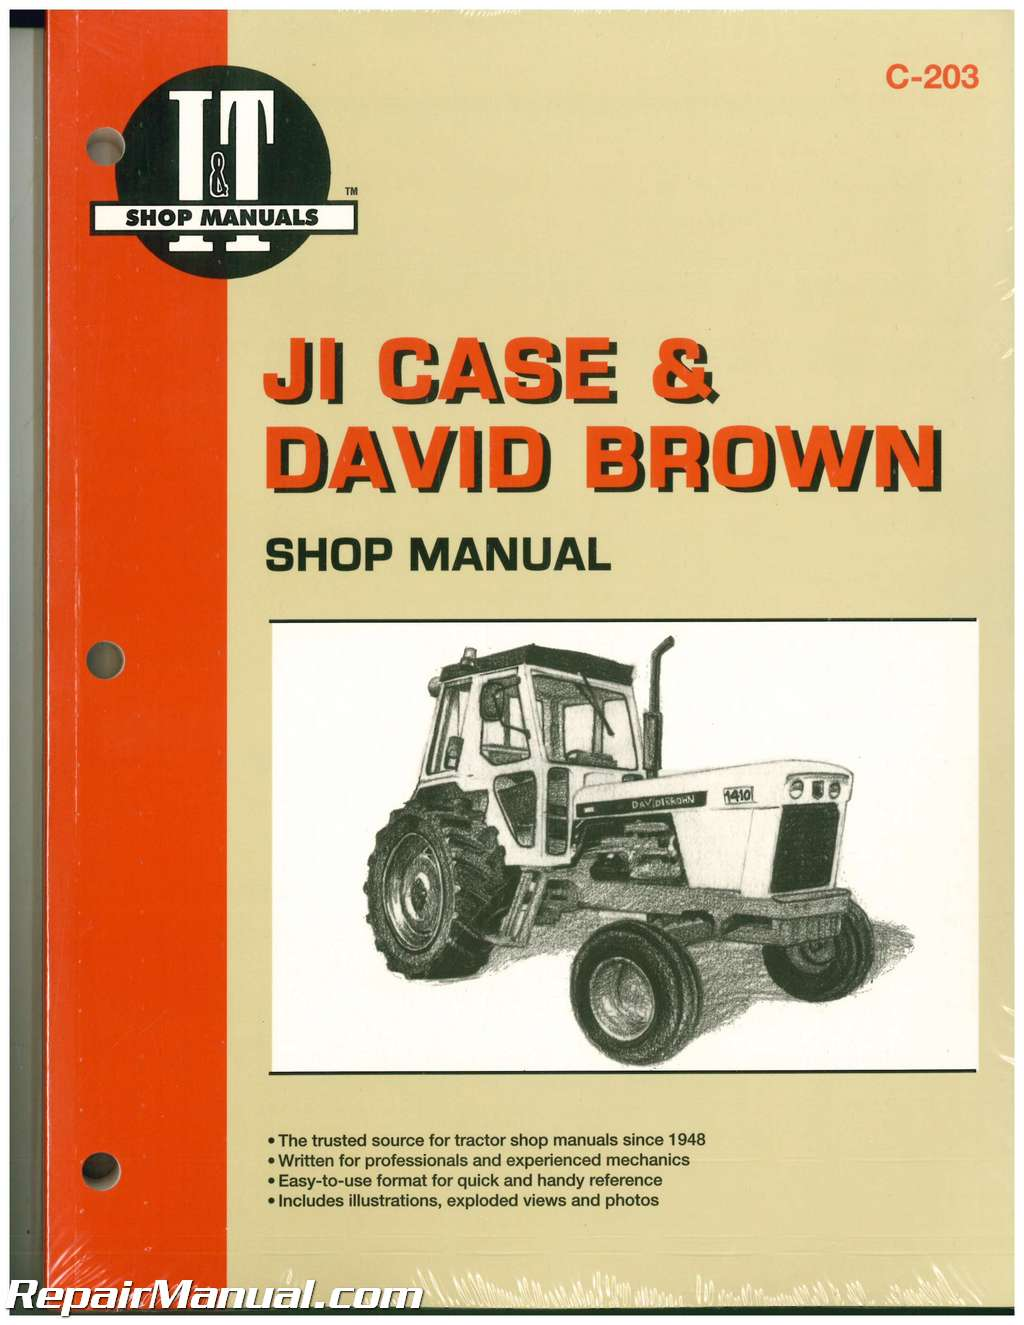 David Brown Tractor 1210 Wiring Diagram Best Electrical Circuit 885 Case Starter Ji And Farm Service Manual Rh Repairmanual Com John Deere Diagrams